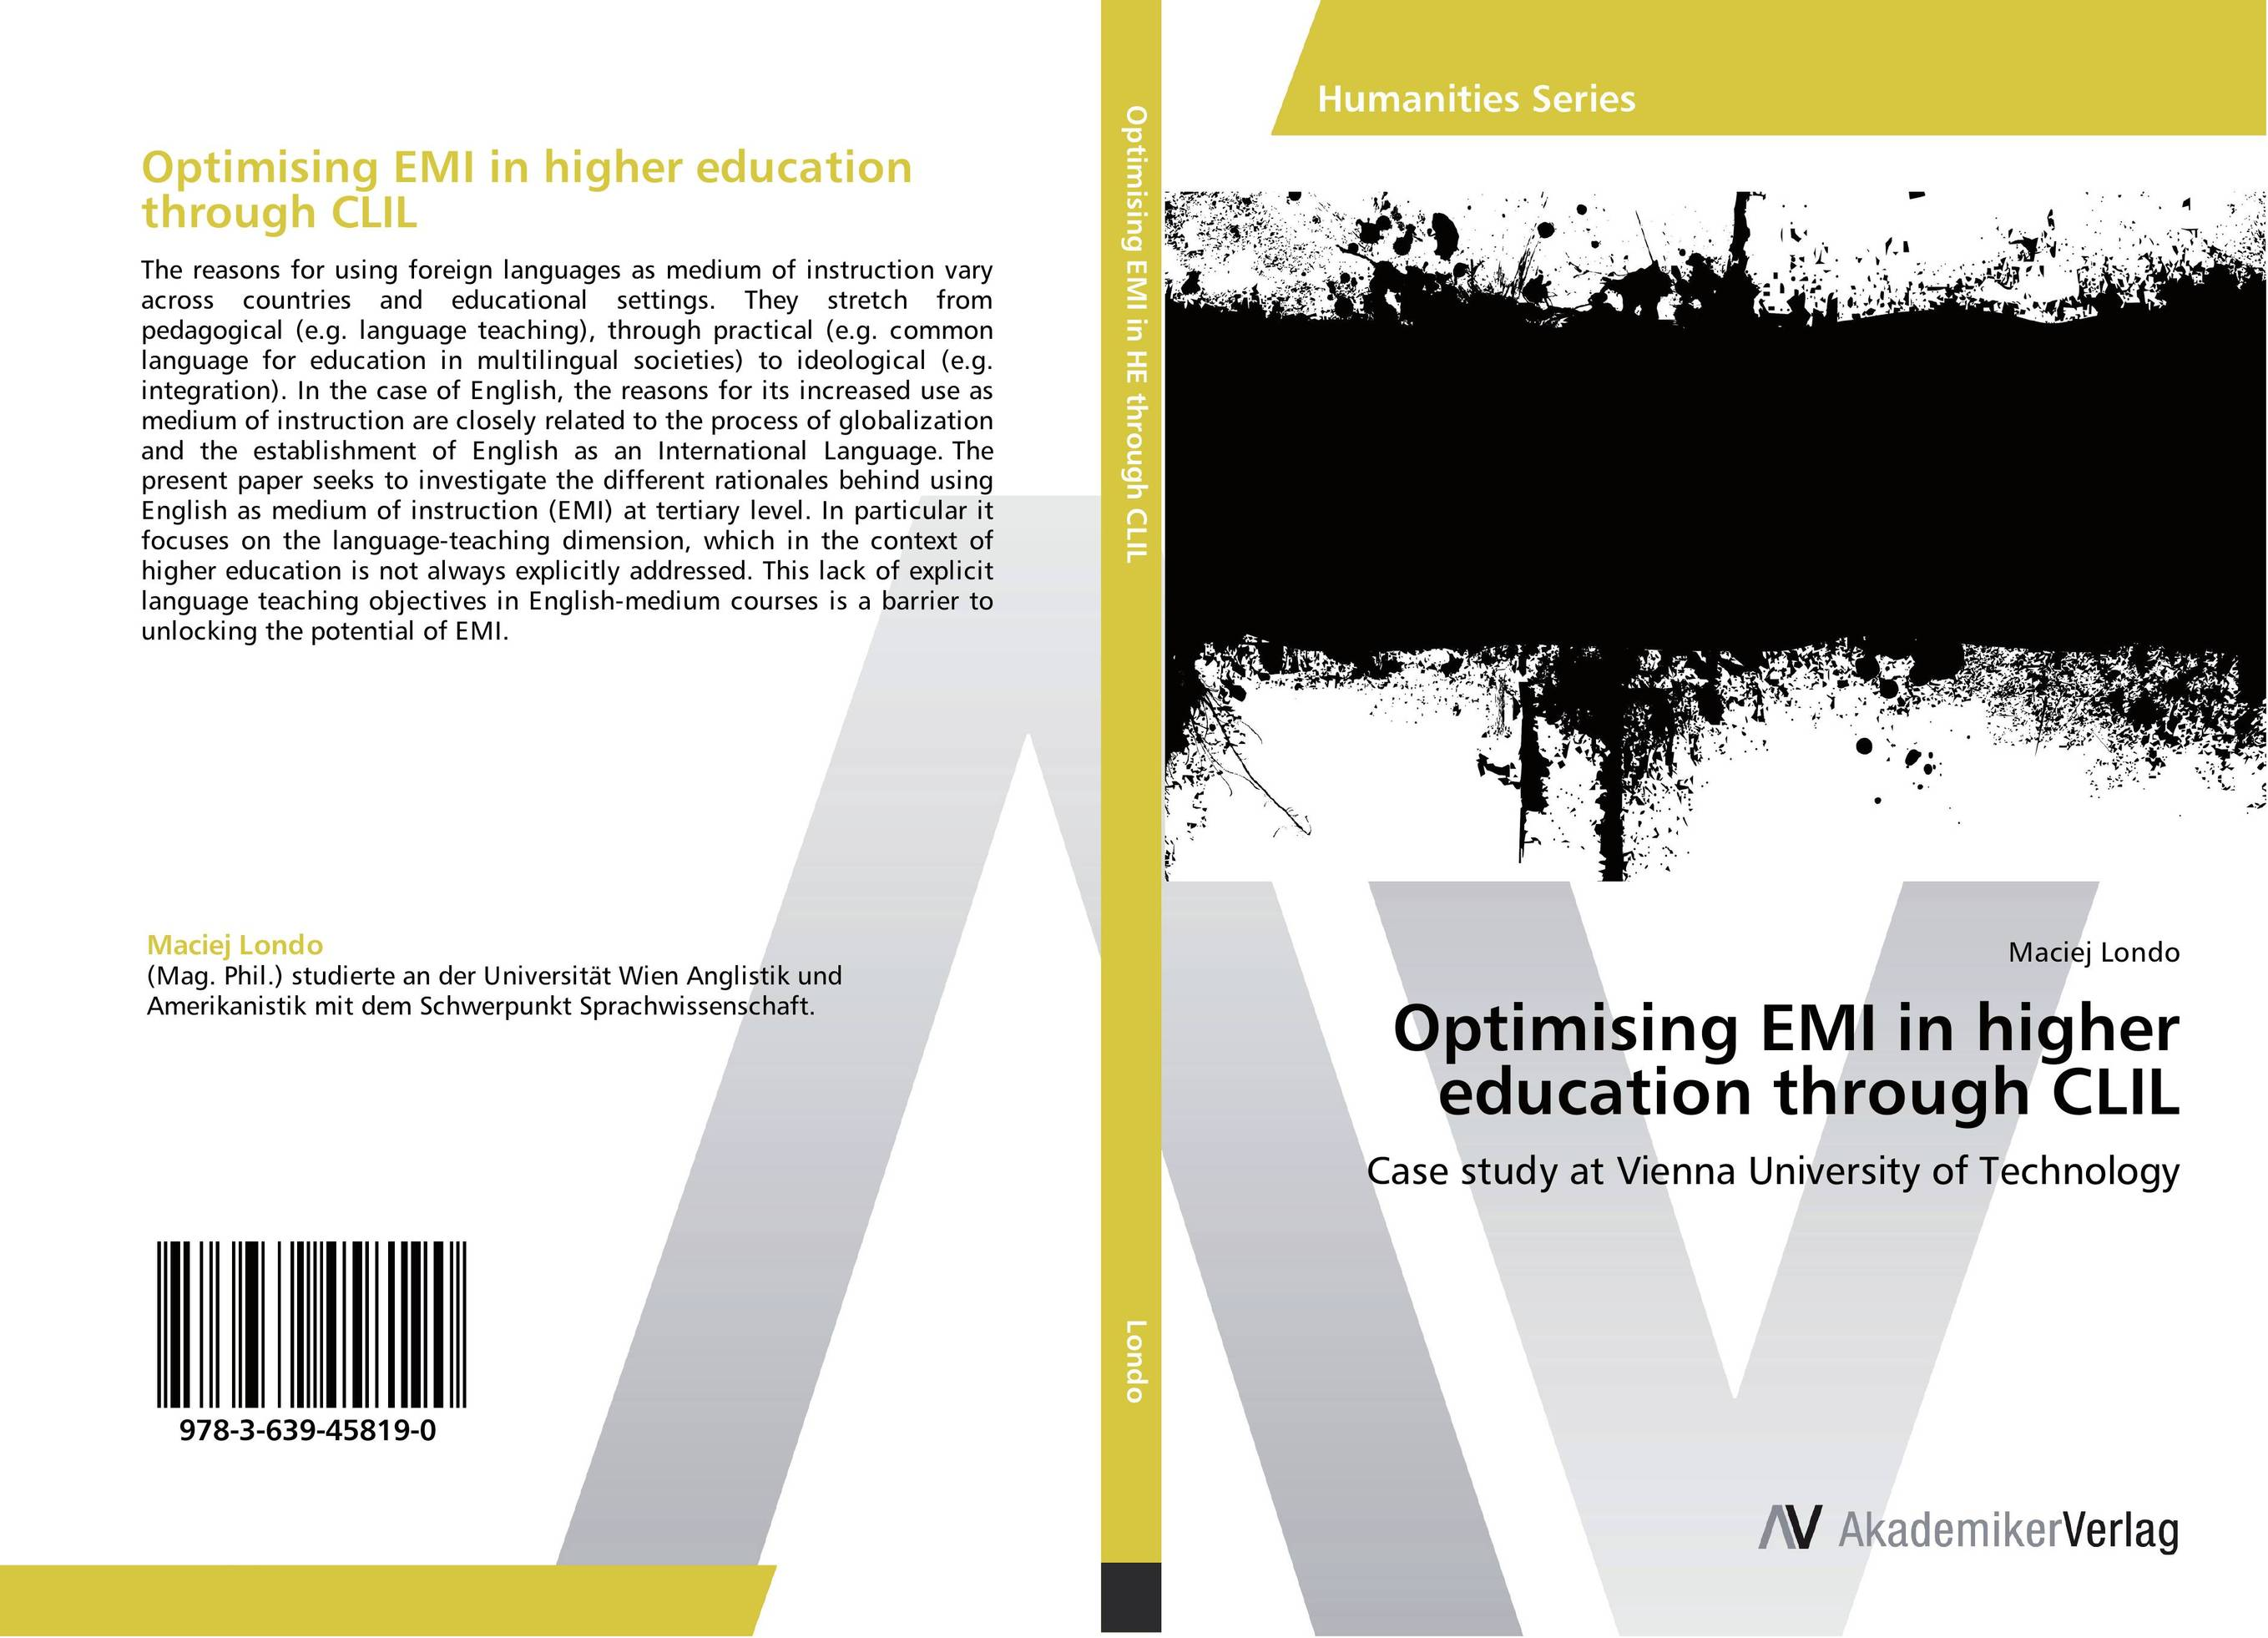 Optimising EMI in higher education through CLIL pedagogical concerns in management of english language teaching